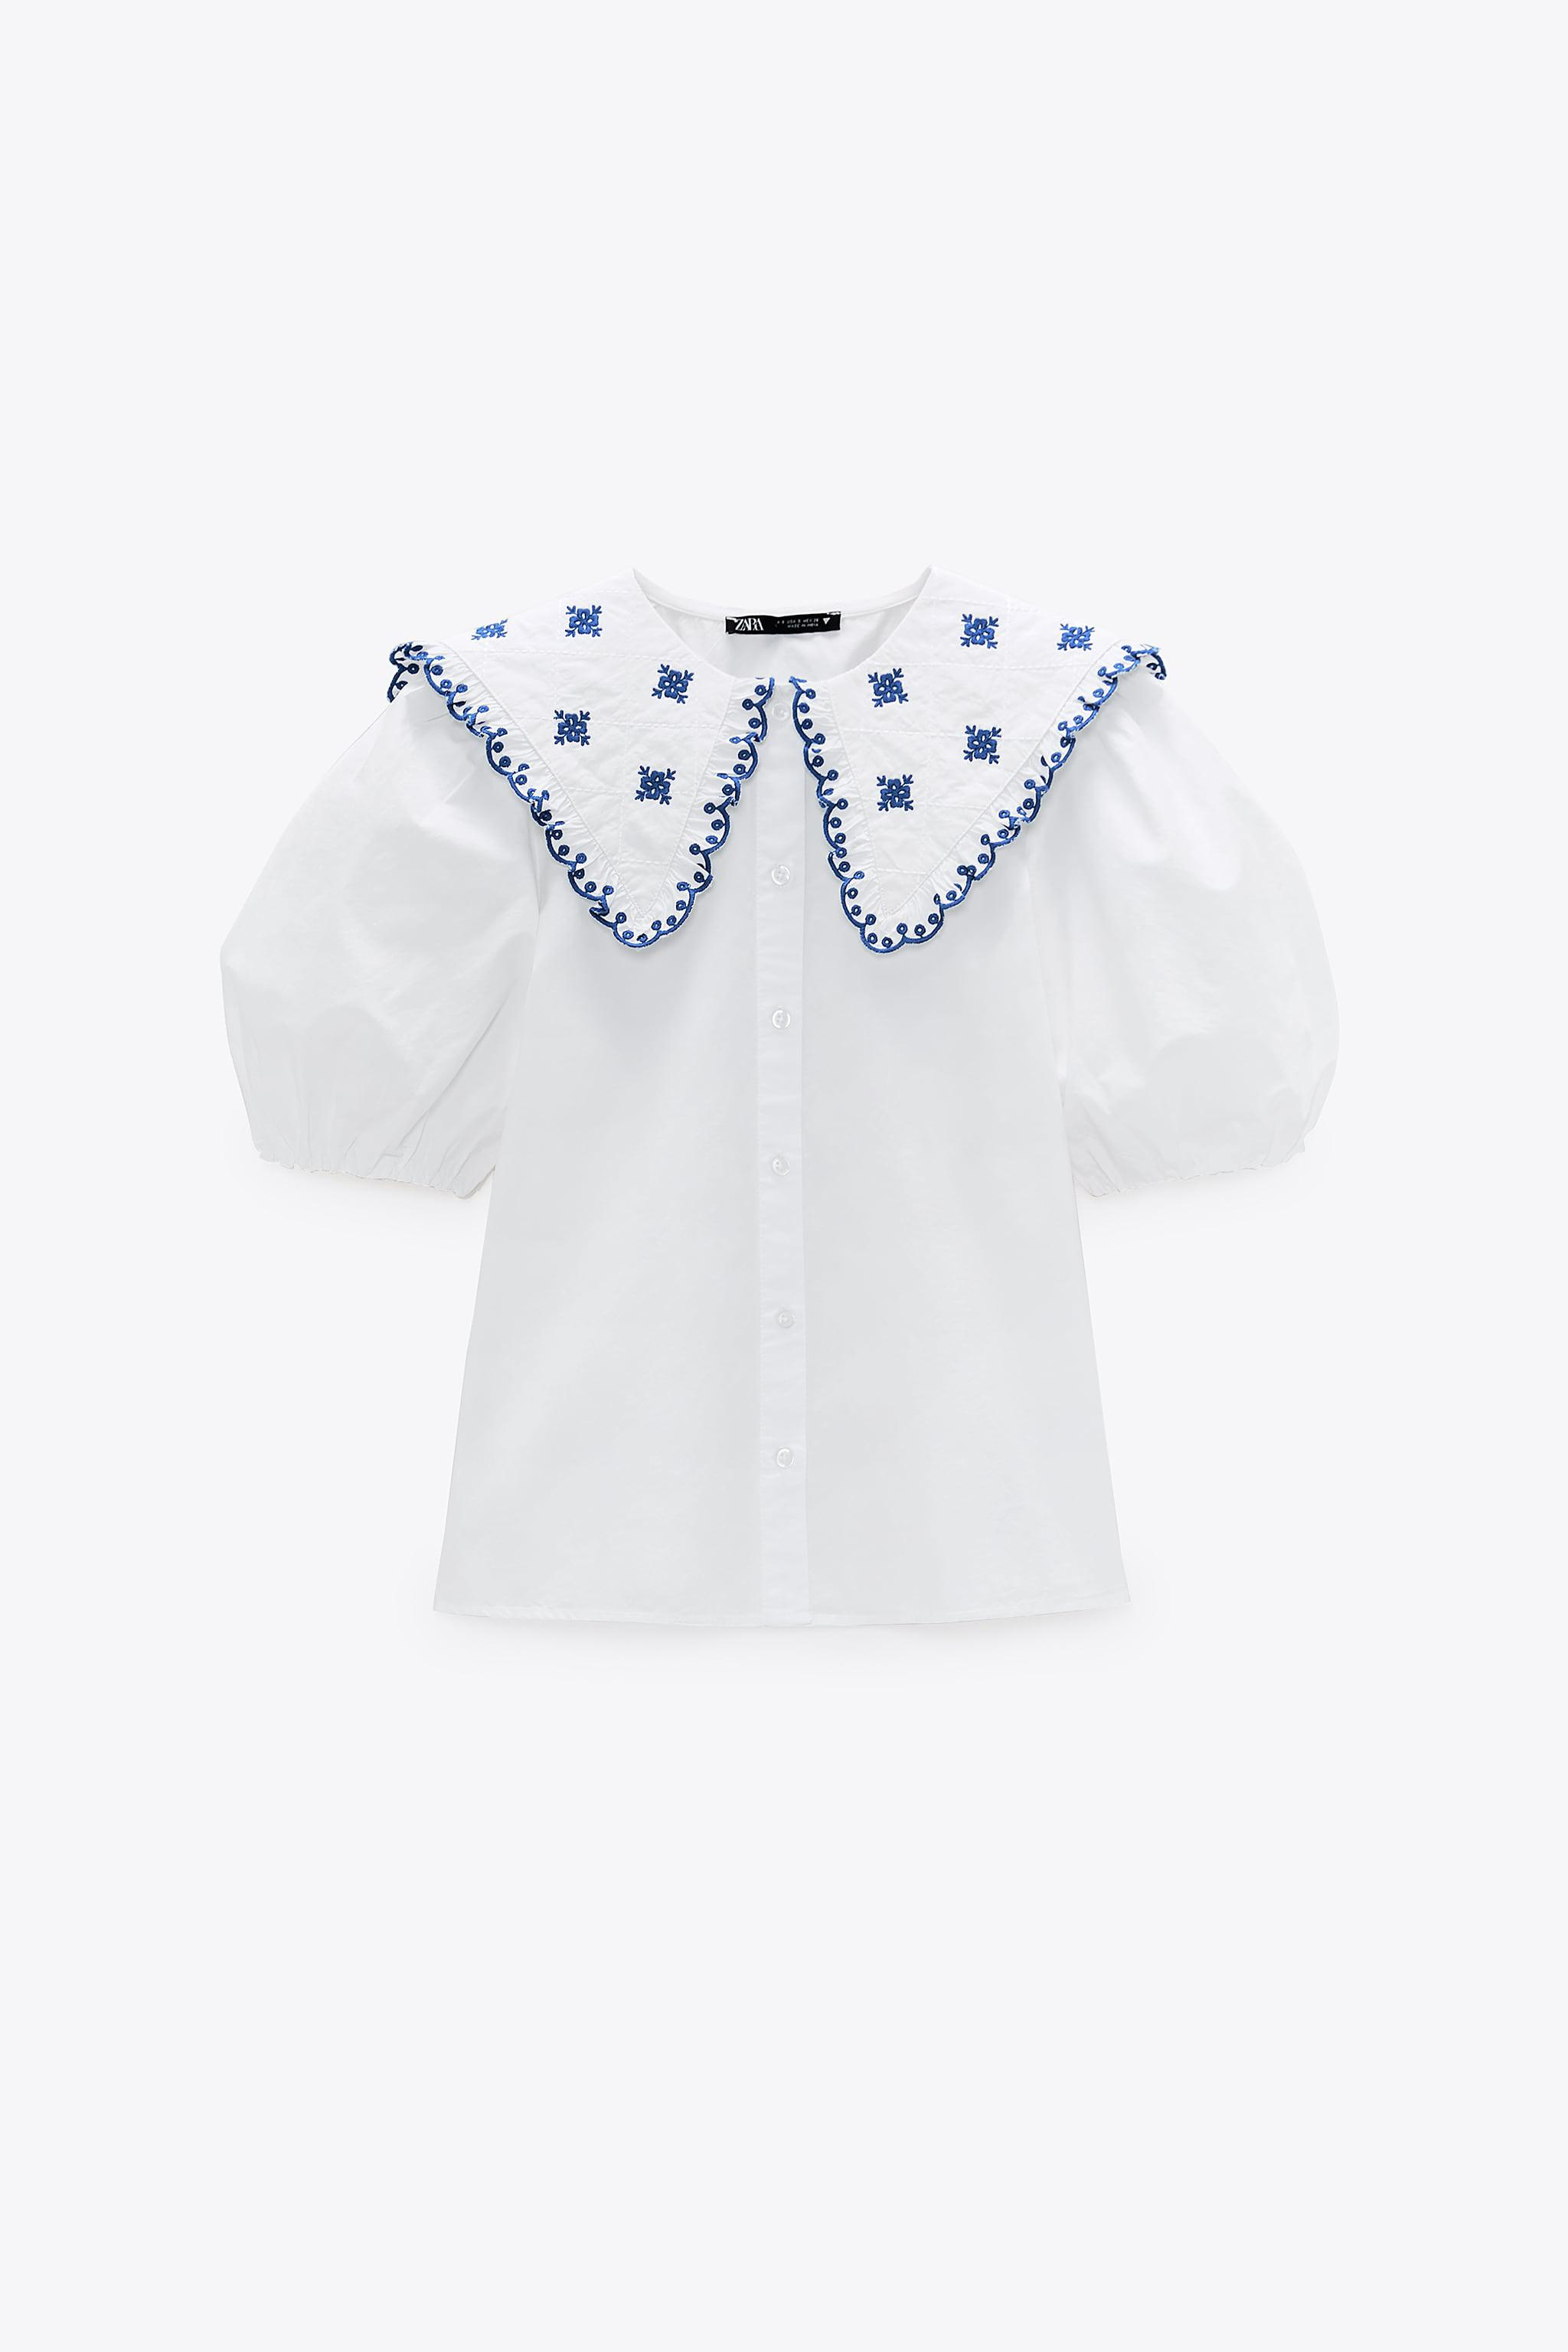 EMBROIDERED POPLIN TOP 5